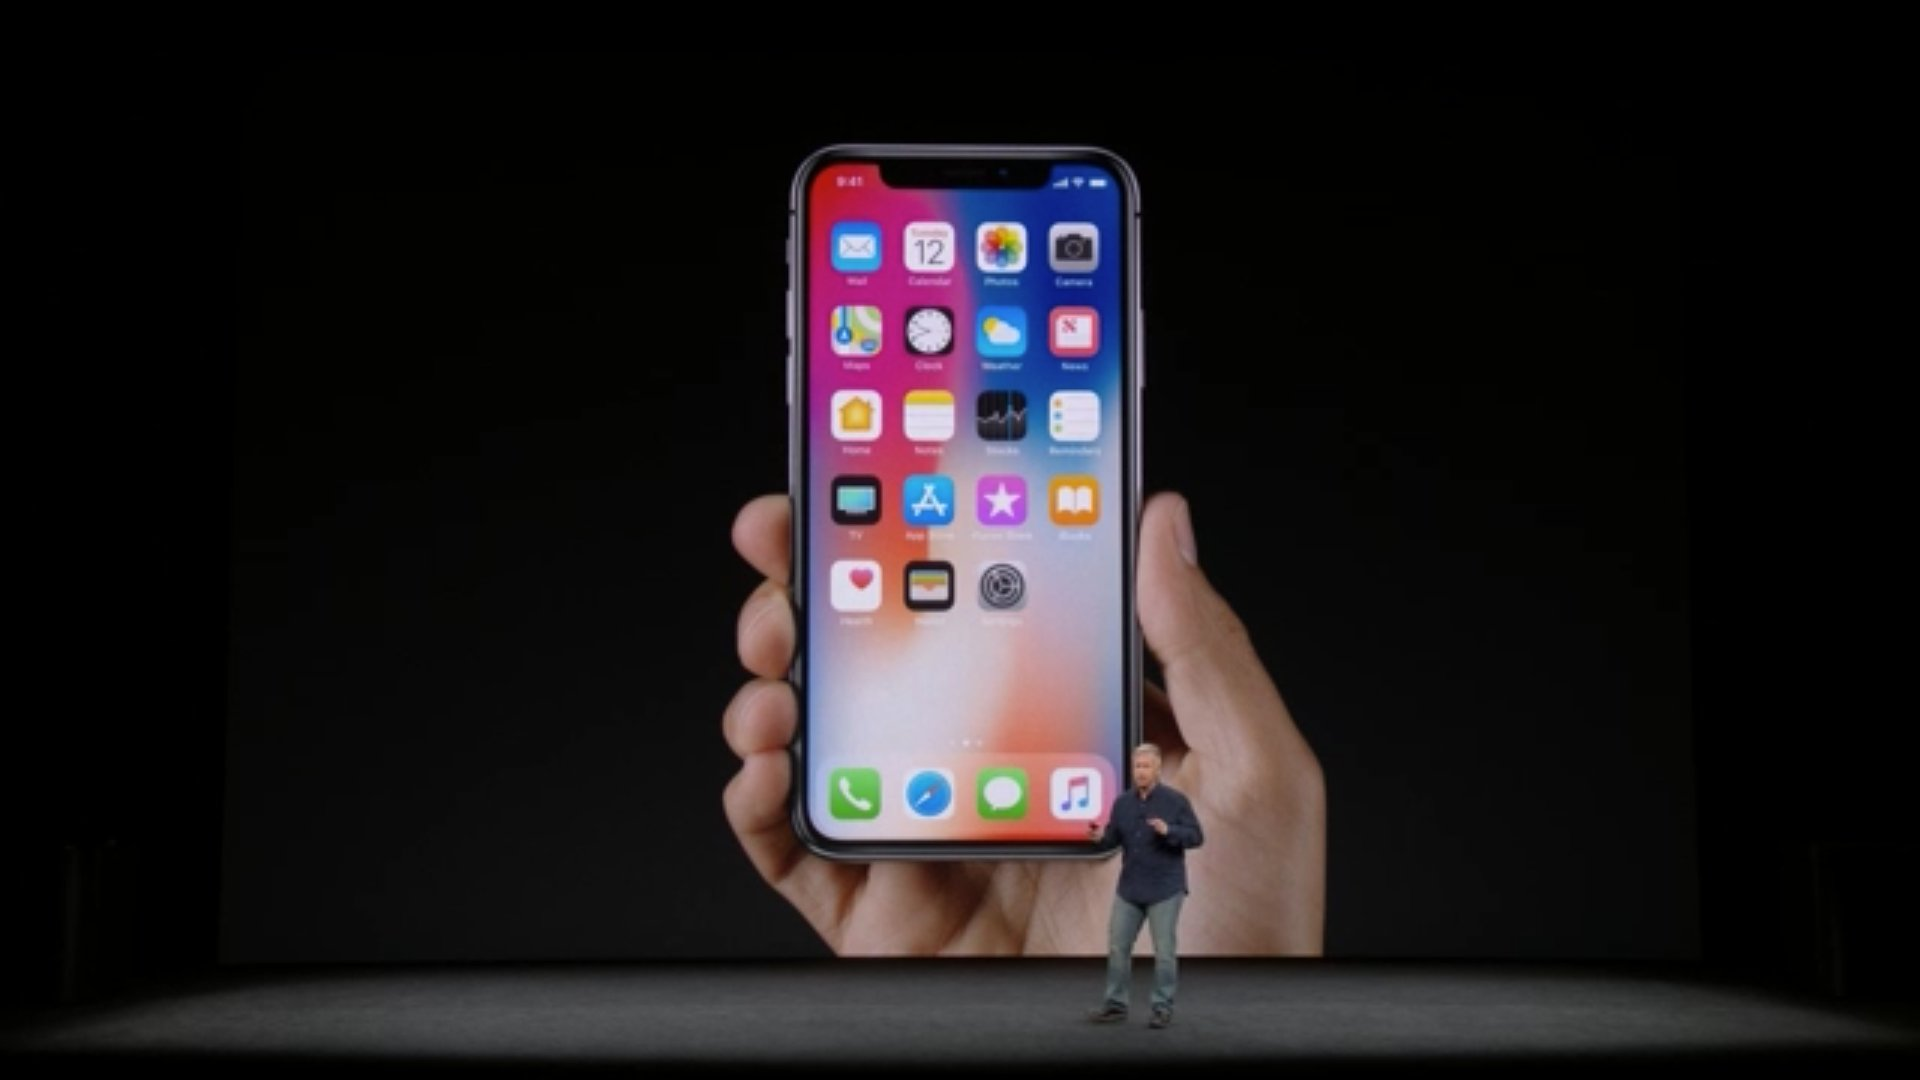 With no more home button, you now swipe up from the bottom of the iPhone X to unlock and go home. #AppleEvent https://t.co/hTPIs6RoMh